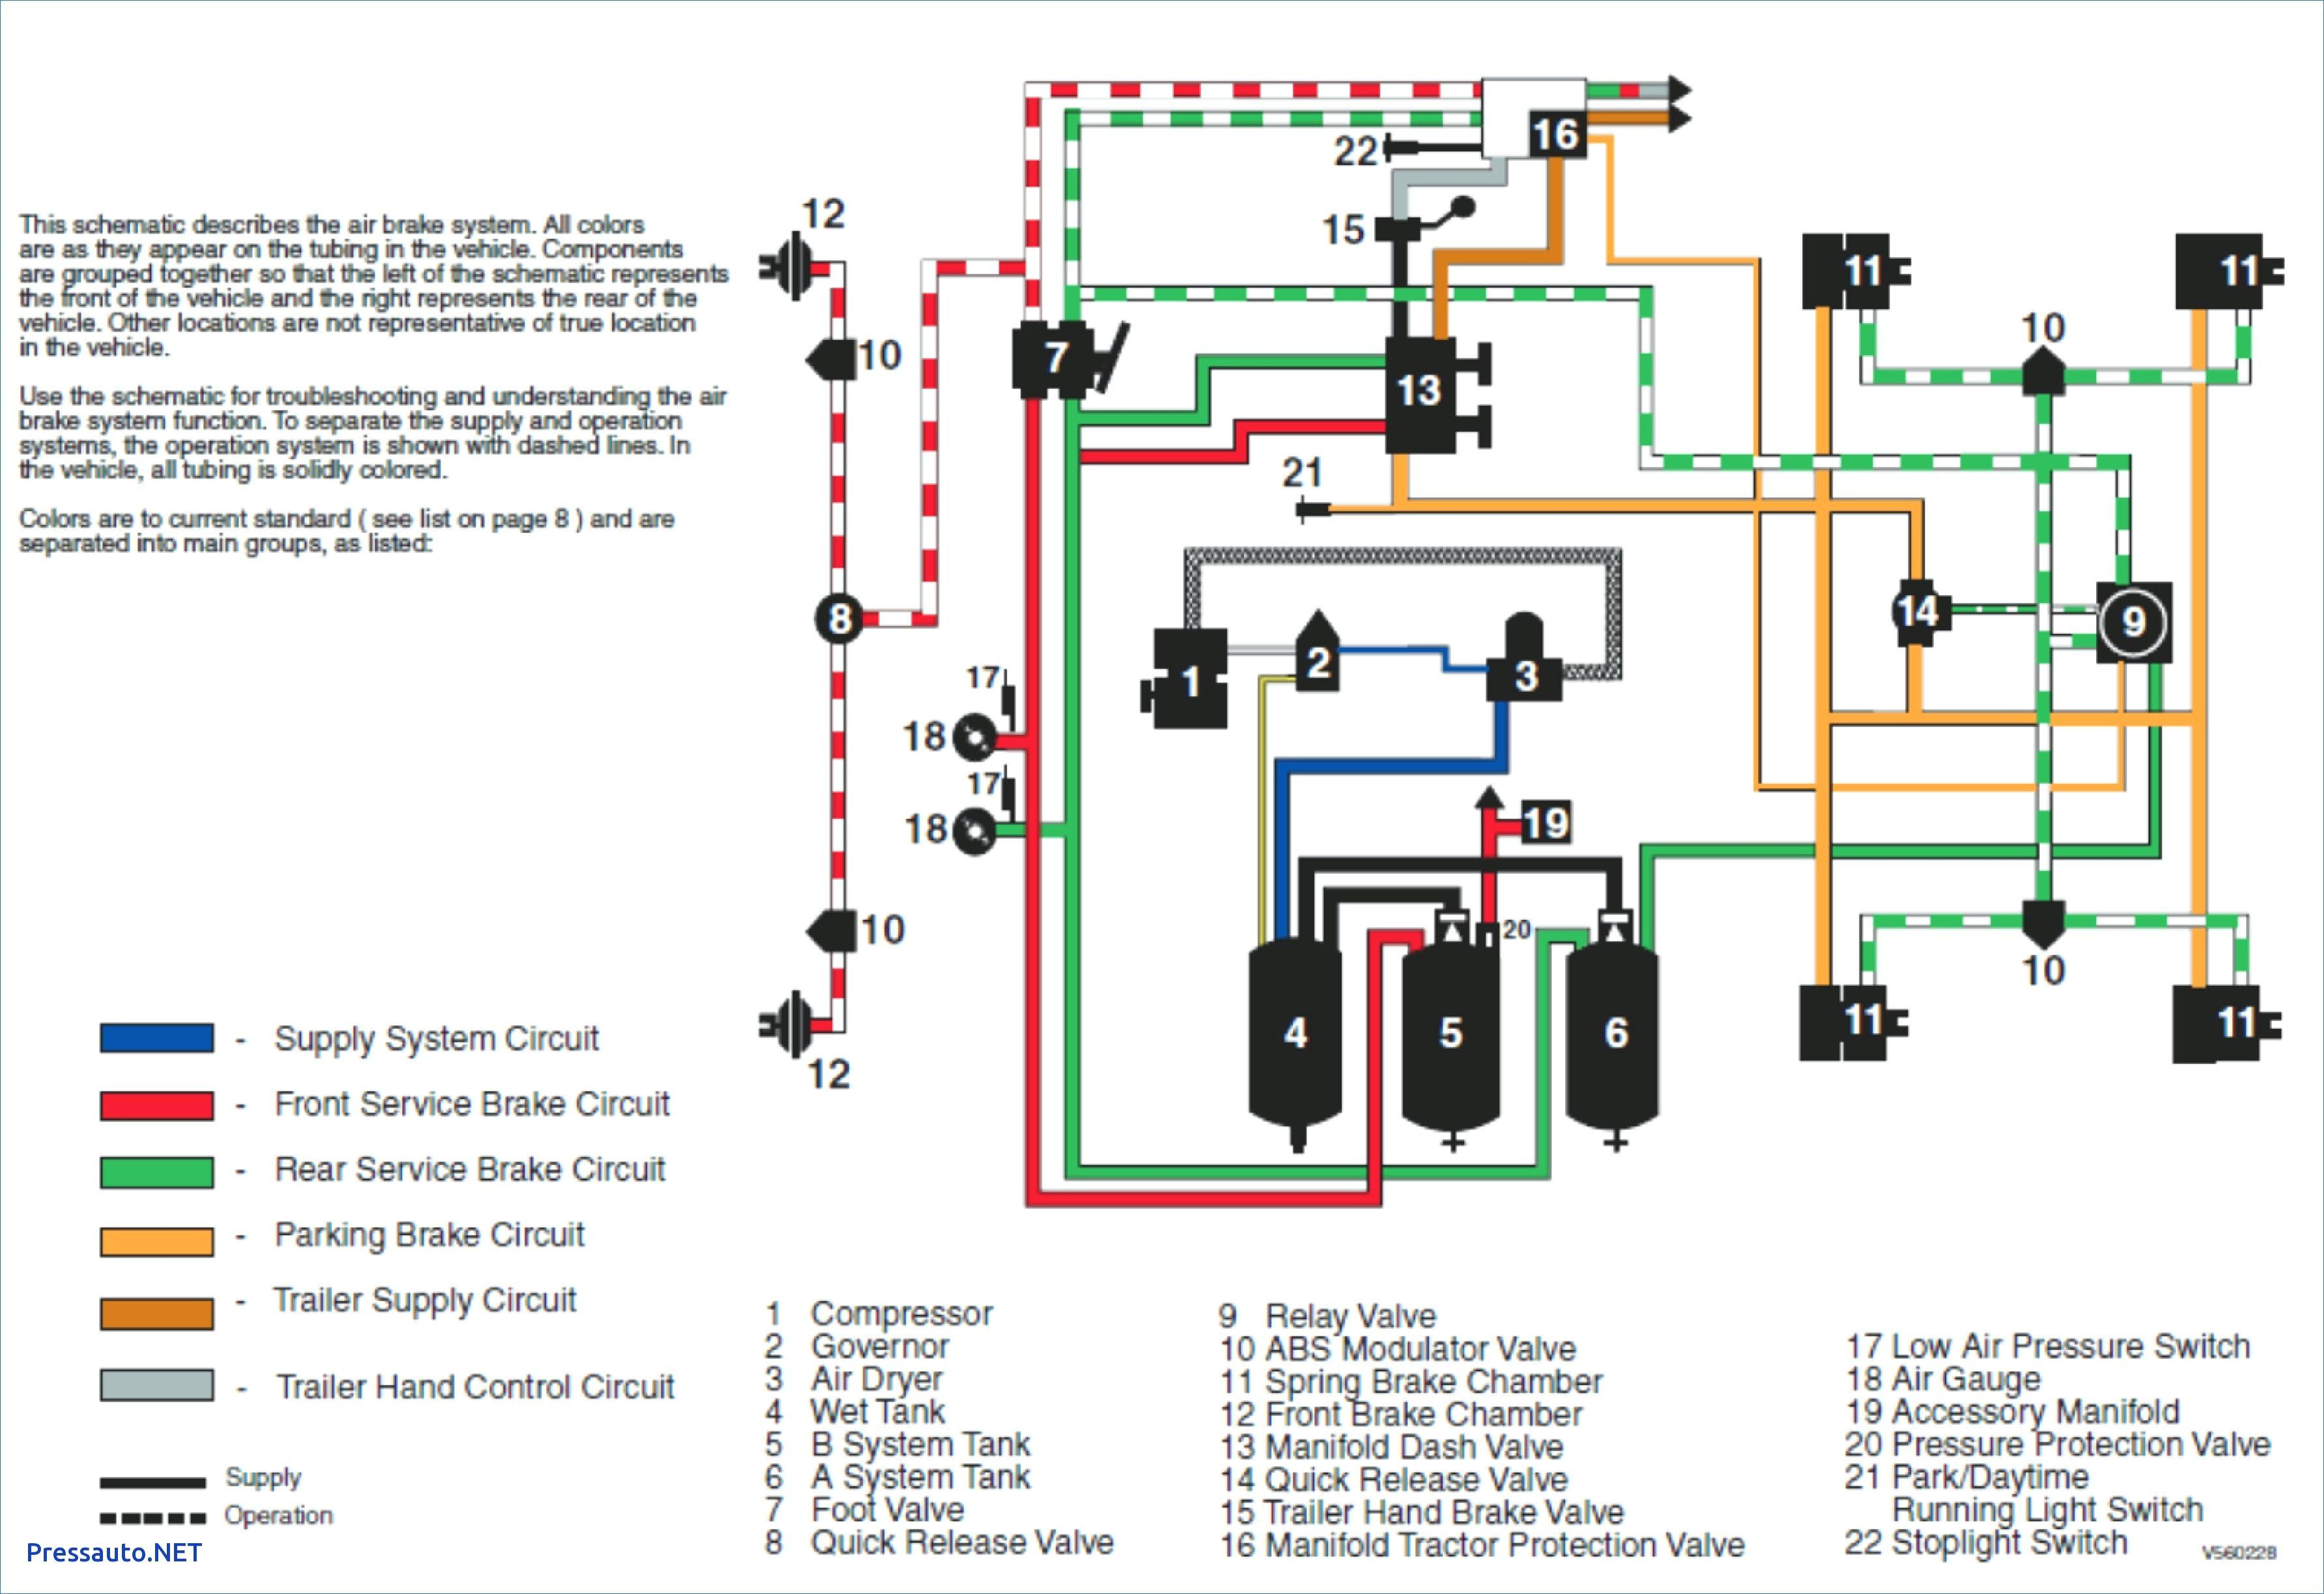 Wiring Diagram for Truck to Trailer Trailer Brake Controller Wiring ...